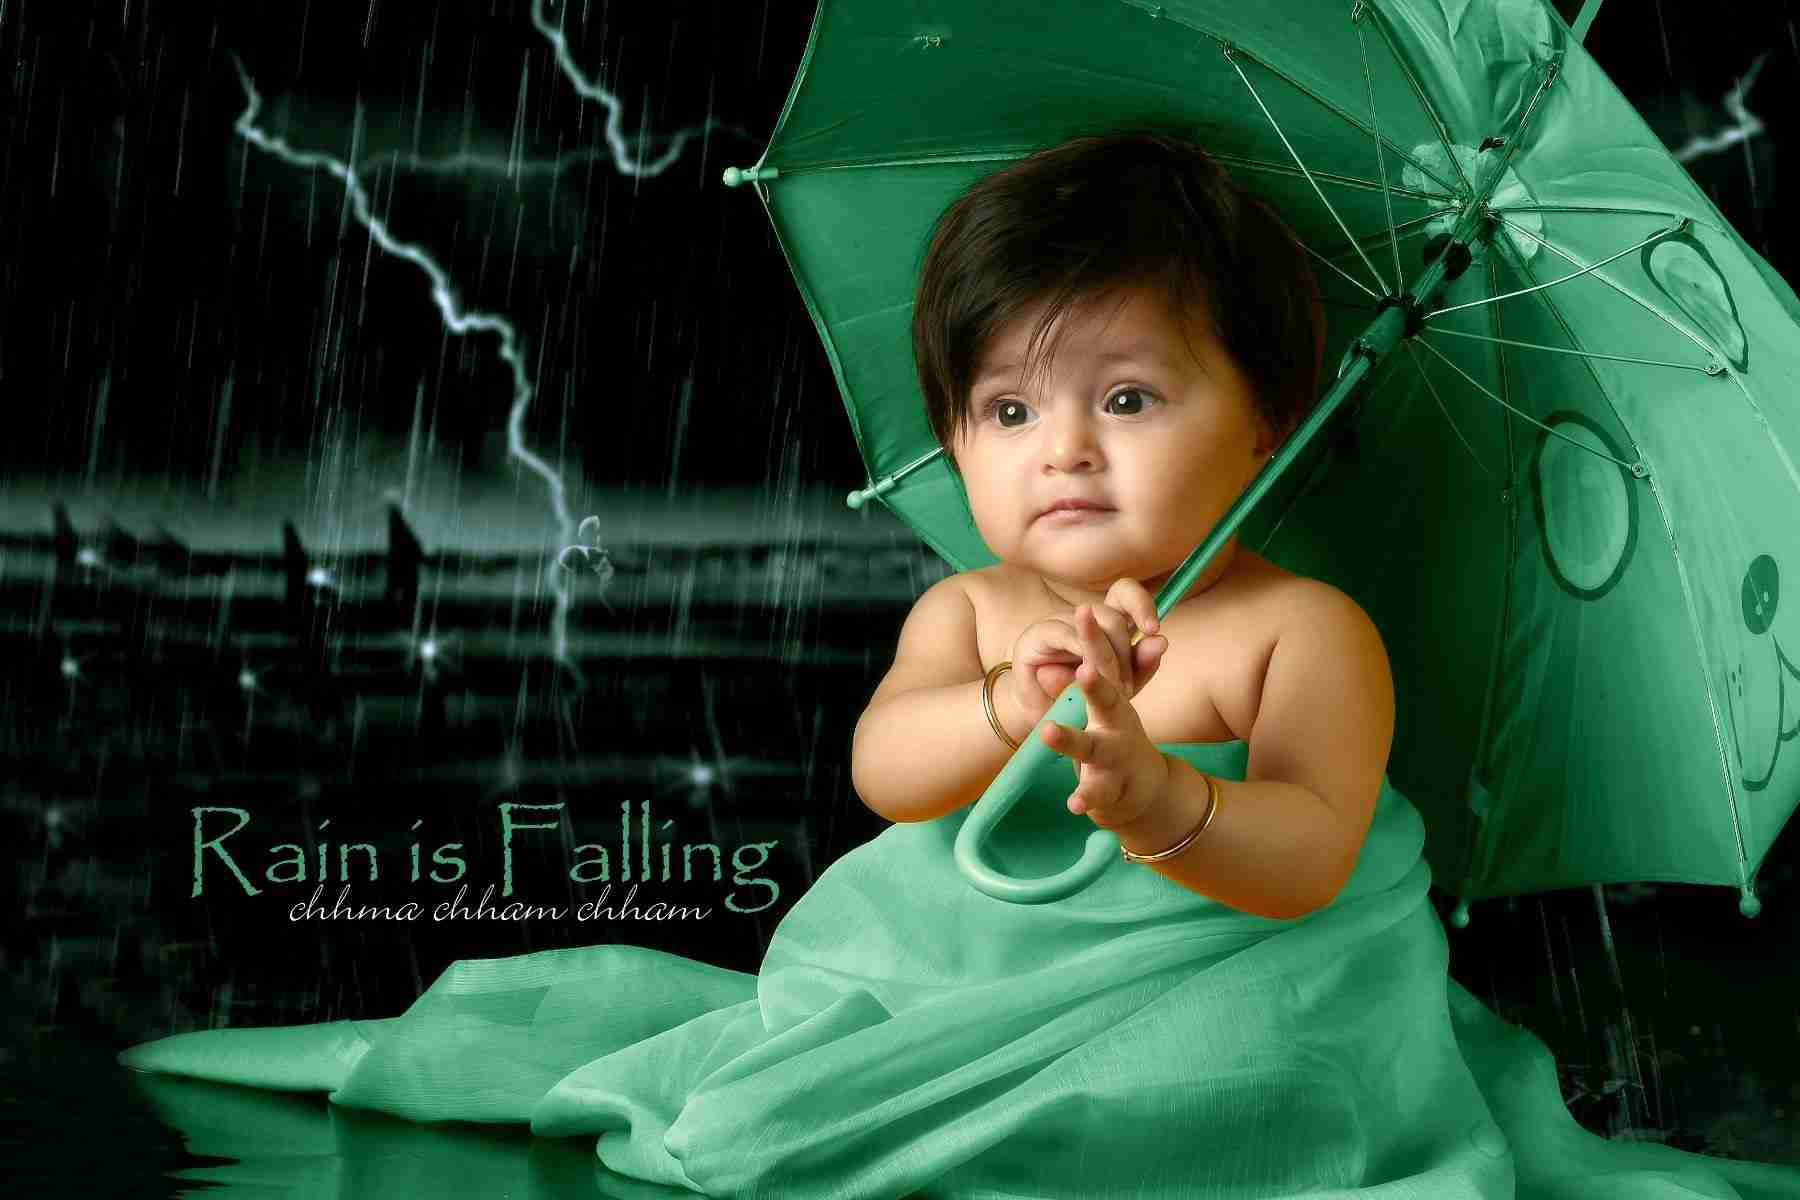 Cute Baby Photos Free Download For Mobile Mooever